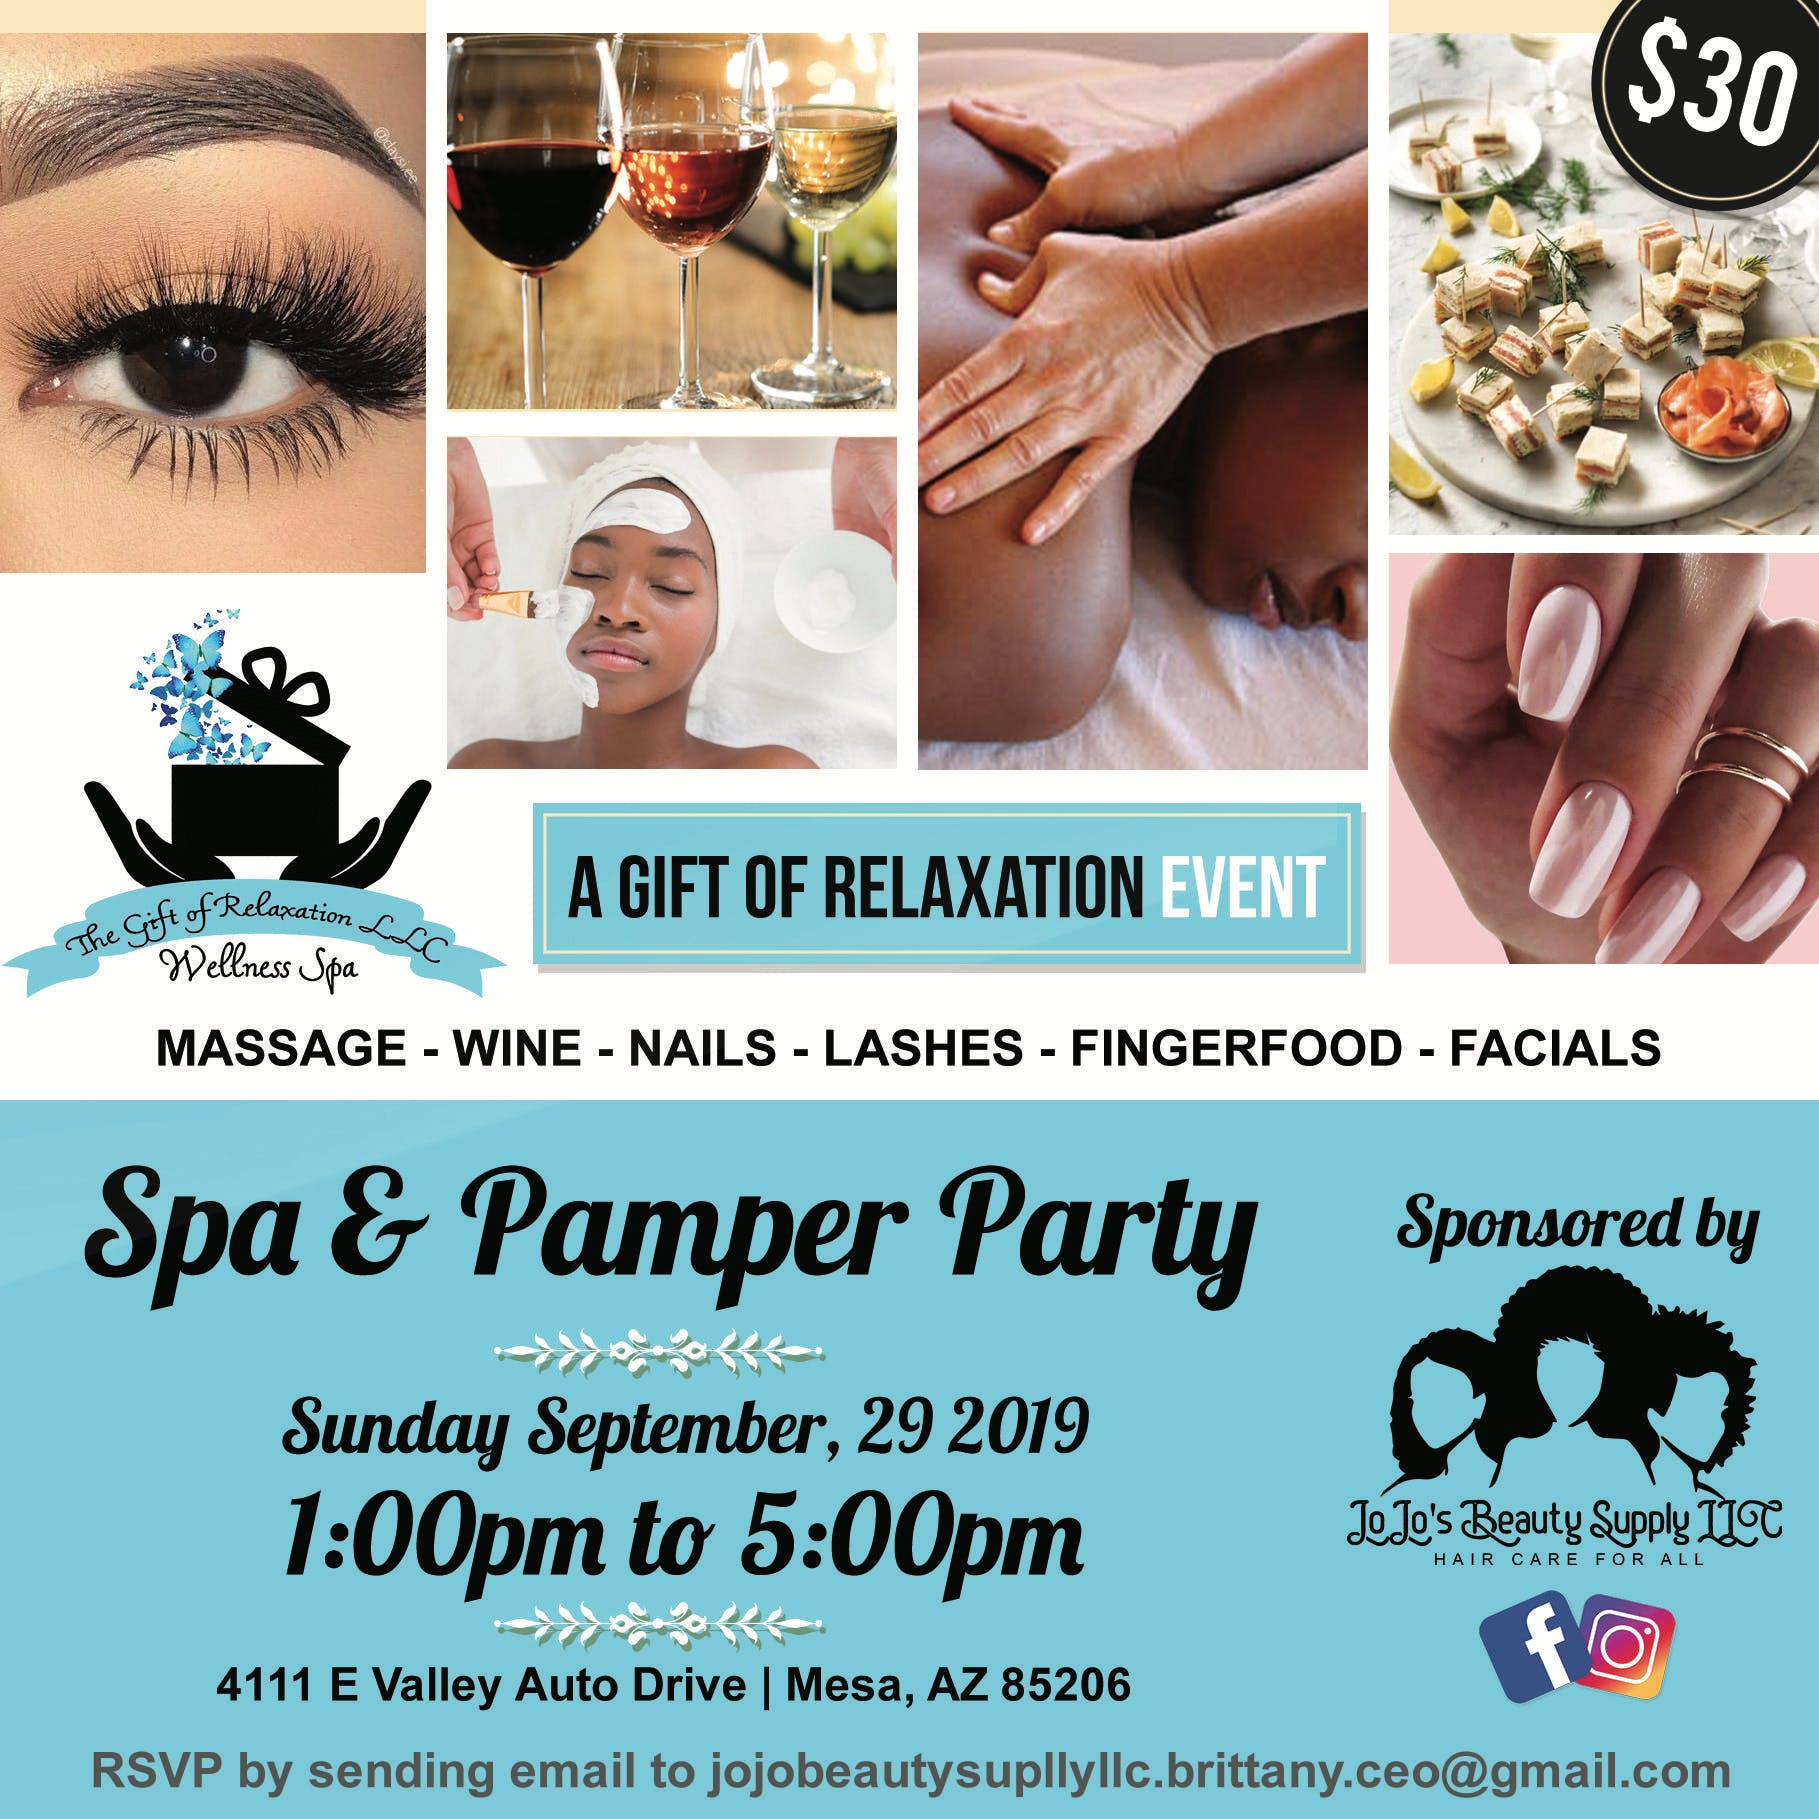 Spa & Pamper Party